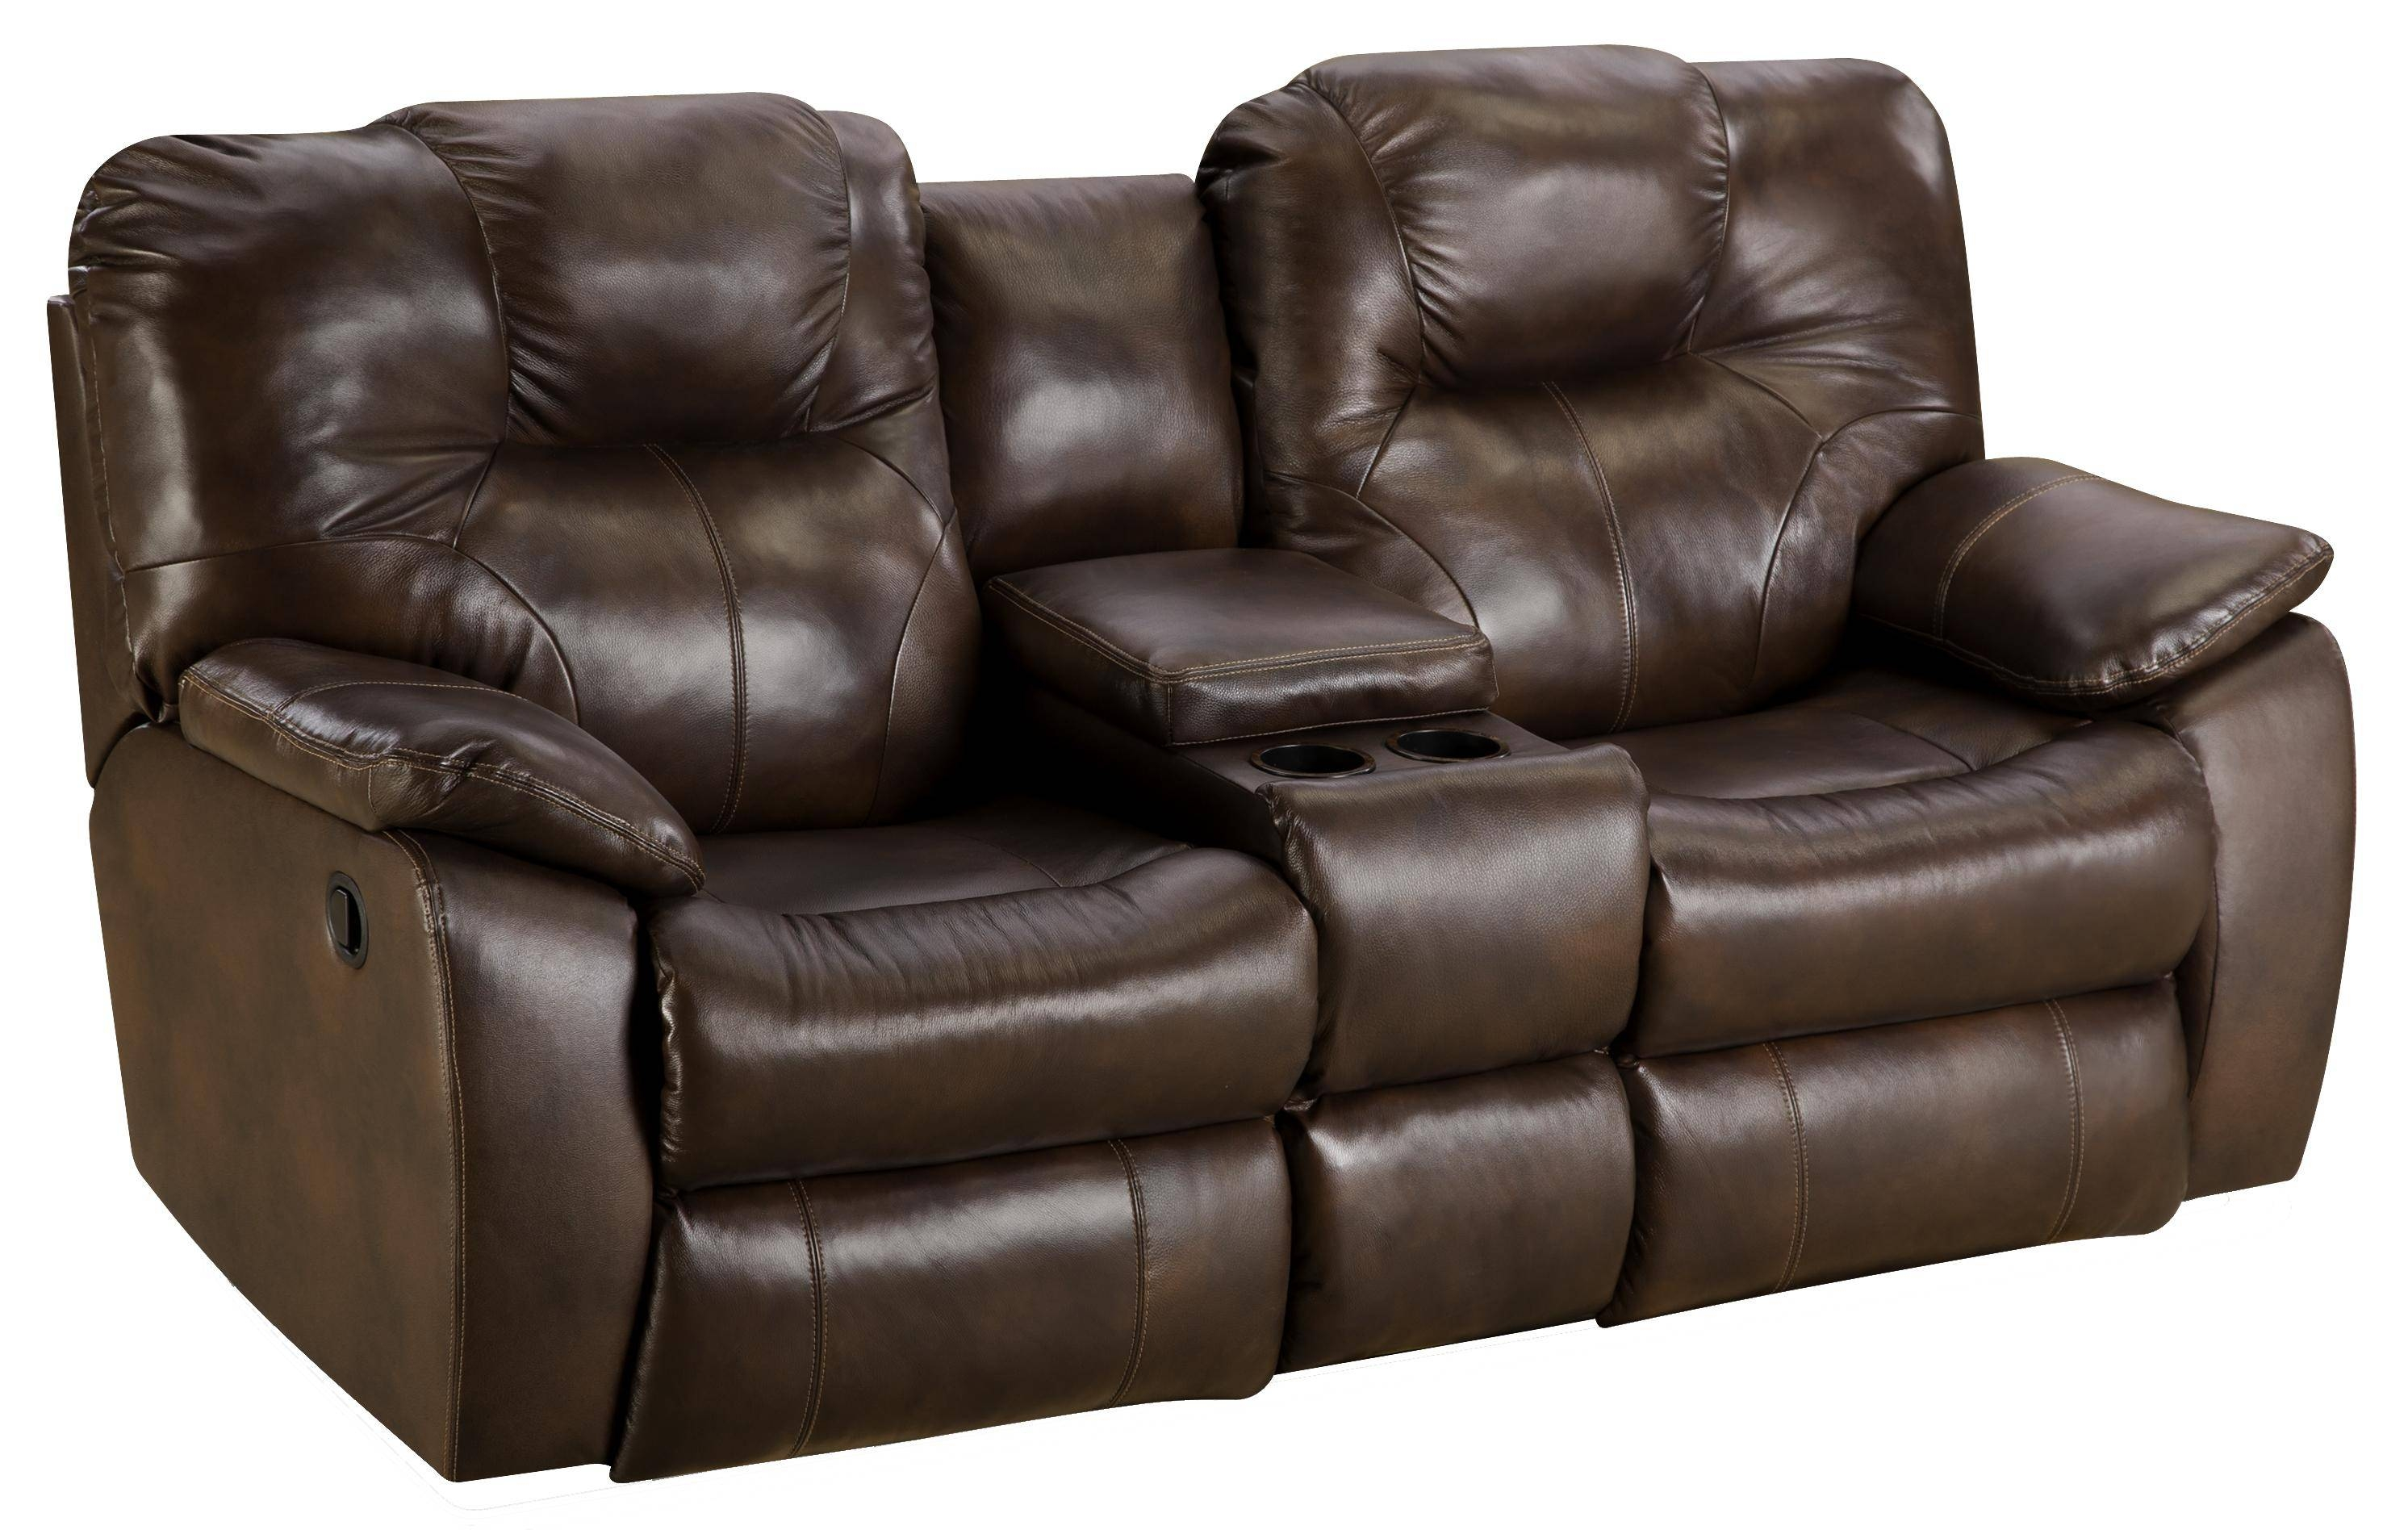 Furniture: Find Your Maximum Comfort With Power Recliner Sofa For Sofas With Console (View 6 of 15)